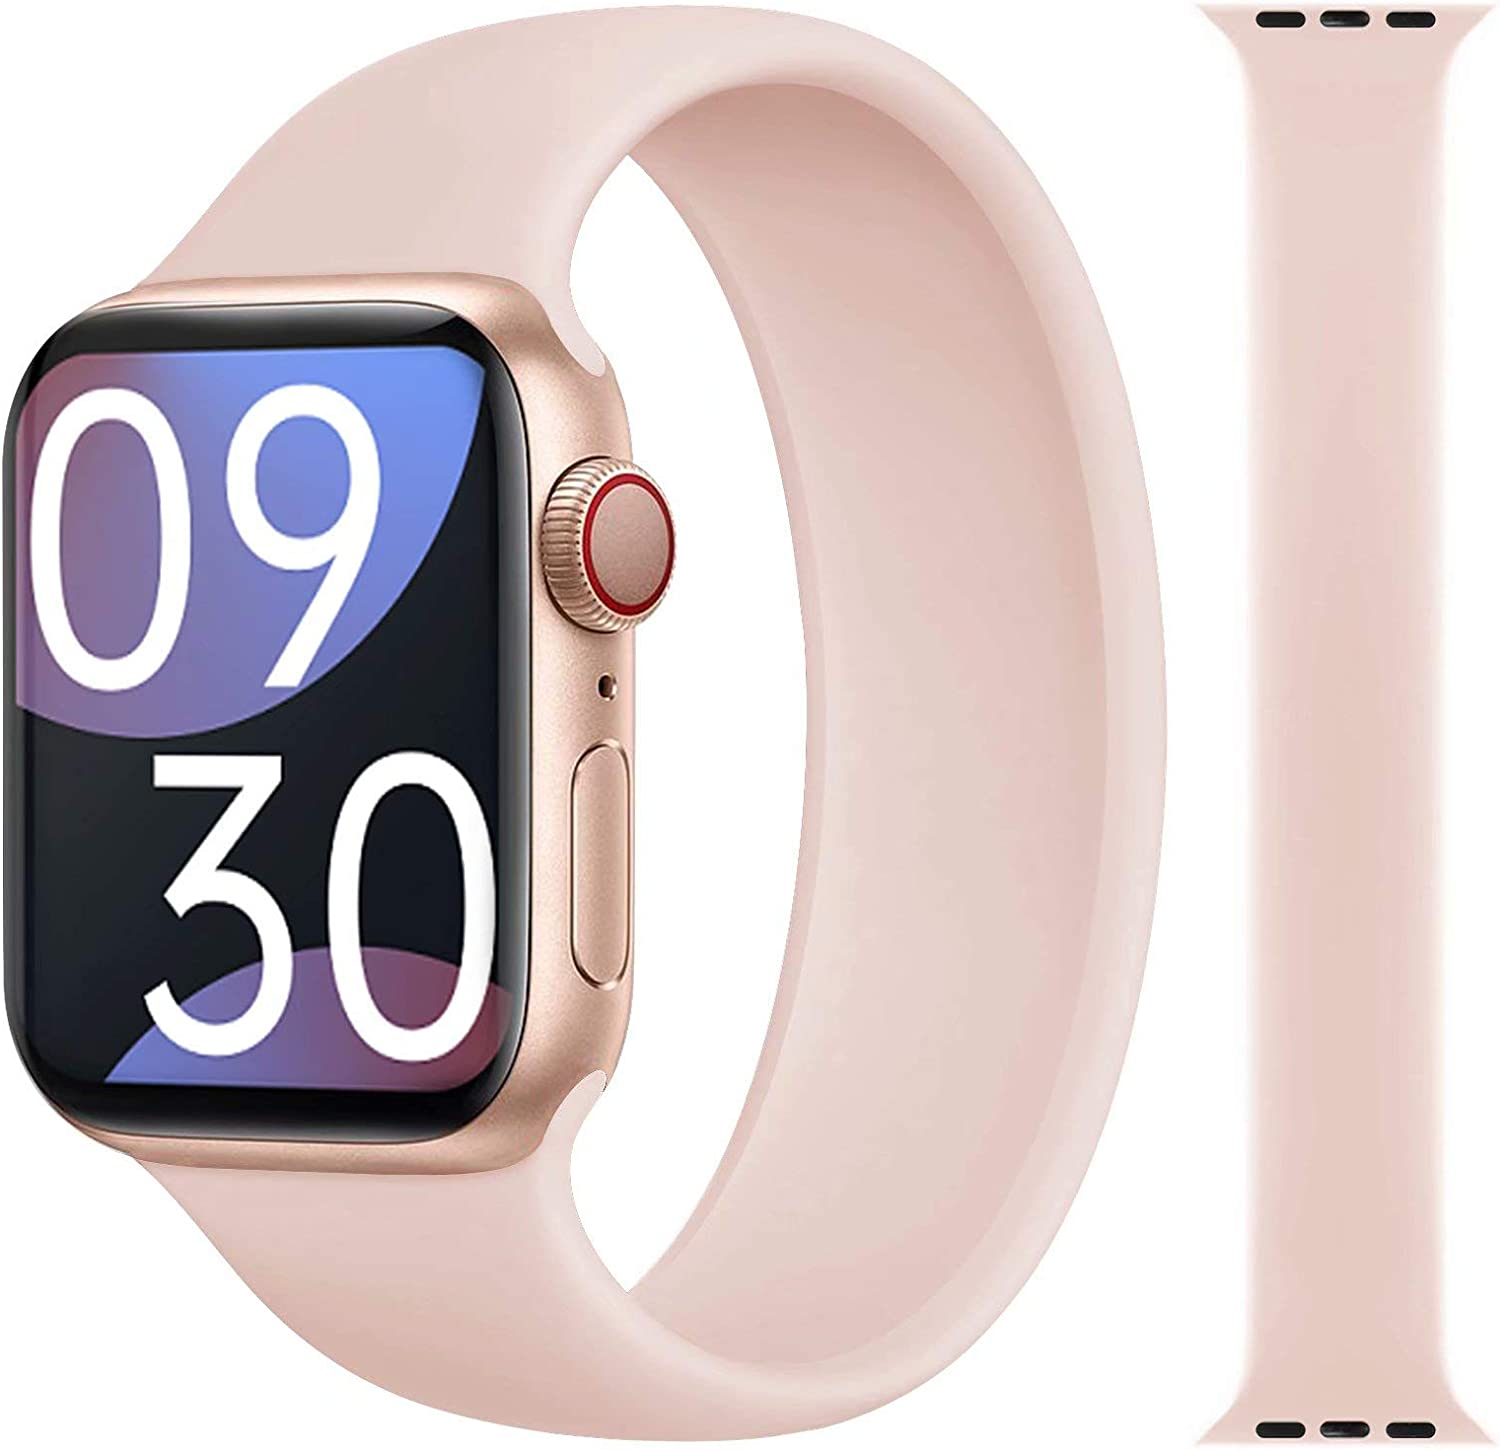 LAST POSH STAR Solo Loop Band Compatible with Apple Watch 38mm 40mm Latest Stretch Liquid Silicone Soft Solo Loop Sport Band, No Buckles or Clasps, Compatible with iWatch Series 6/SE/5/4/3/2/1